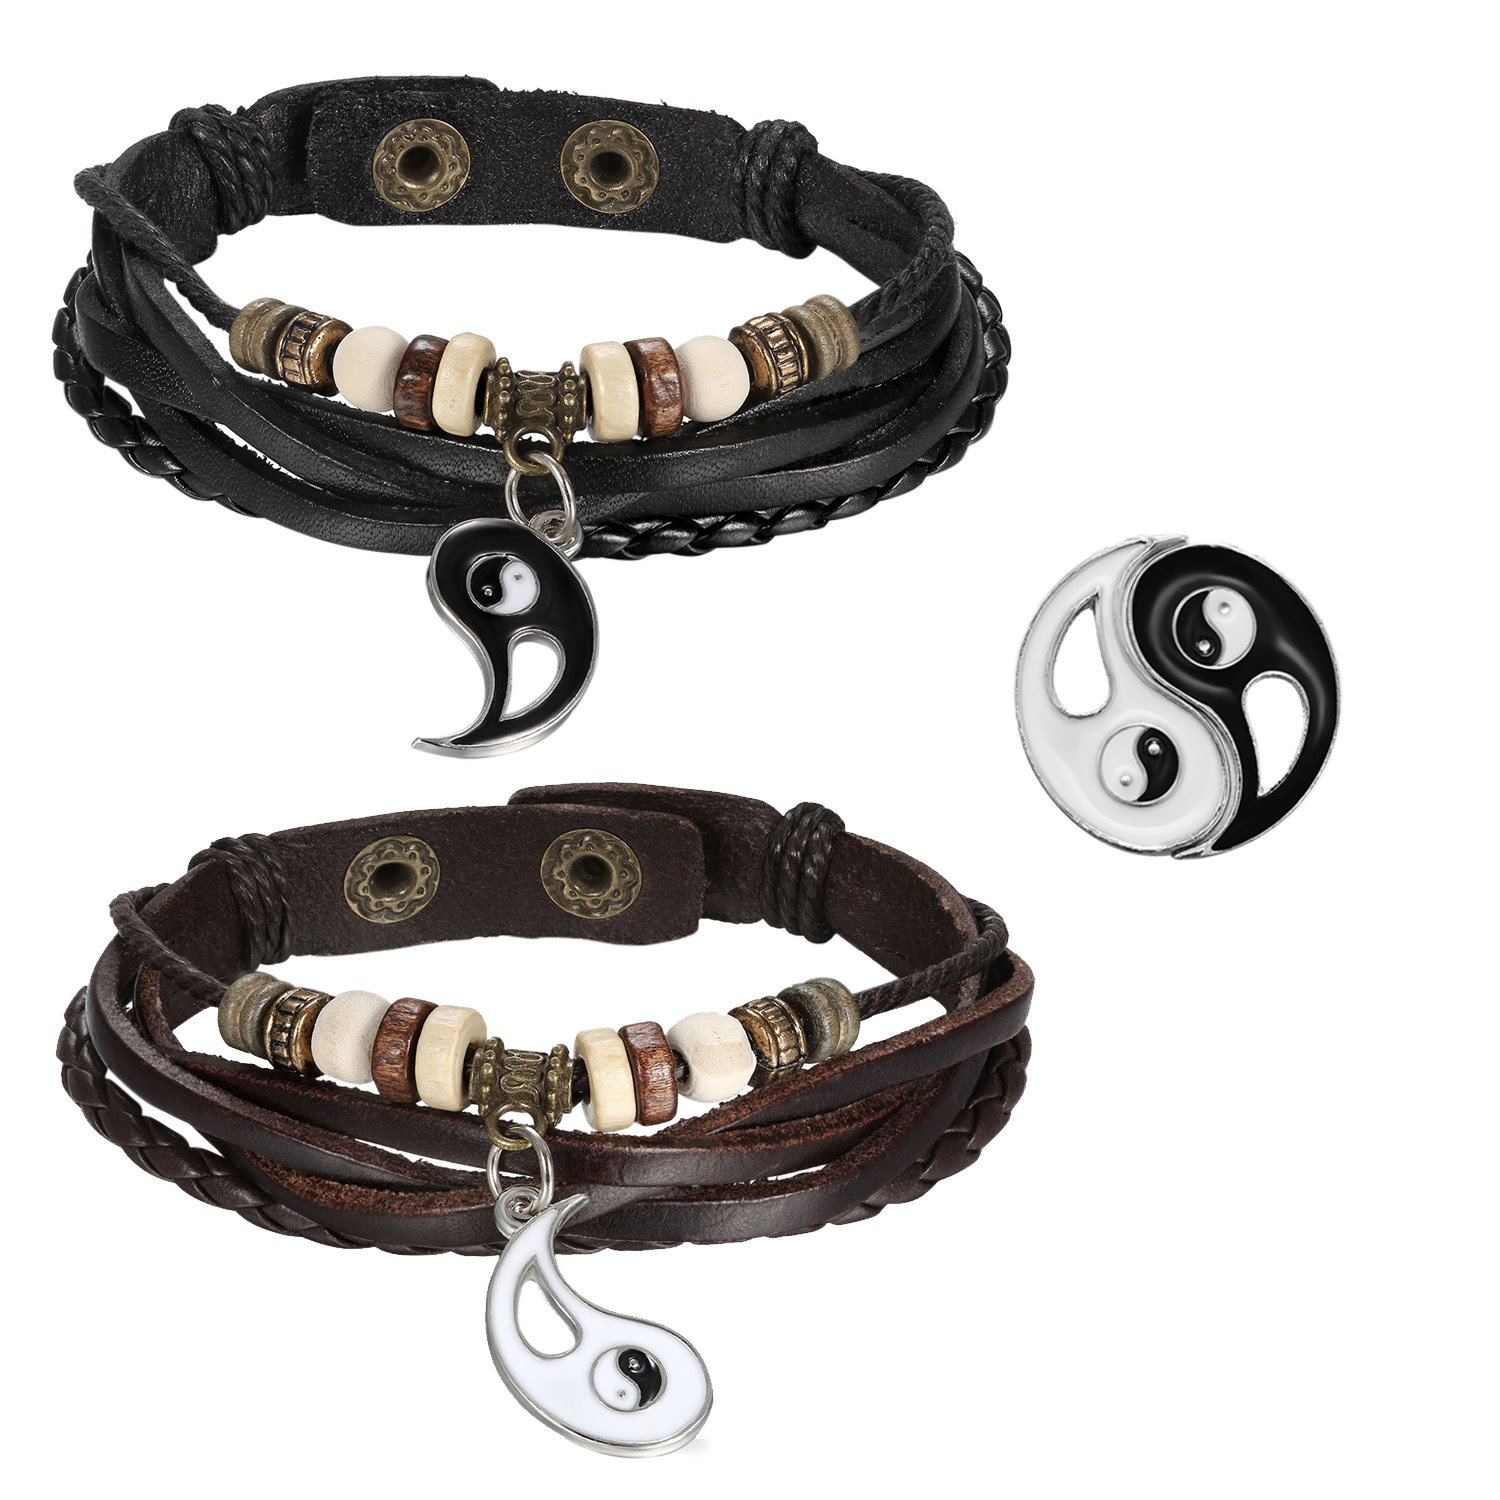 2pcs Mens Womens Adjustable Vintage Leather Braided Yin Yang Pendant Beads Charm Link Bracelet for Couples,Black Brown Oidea O0070071-CA